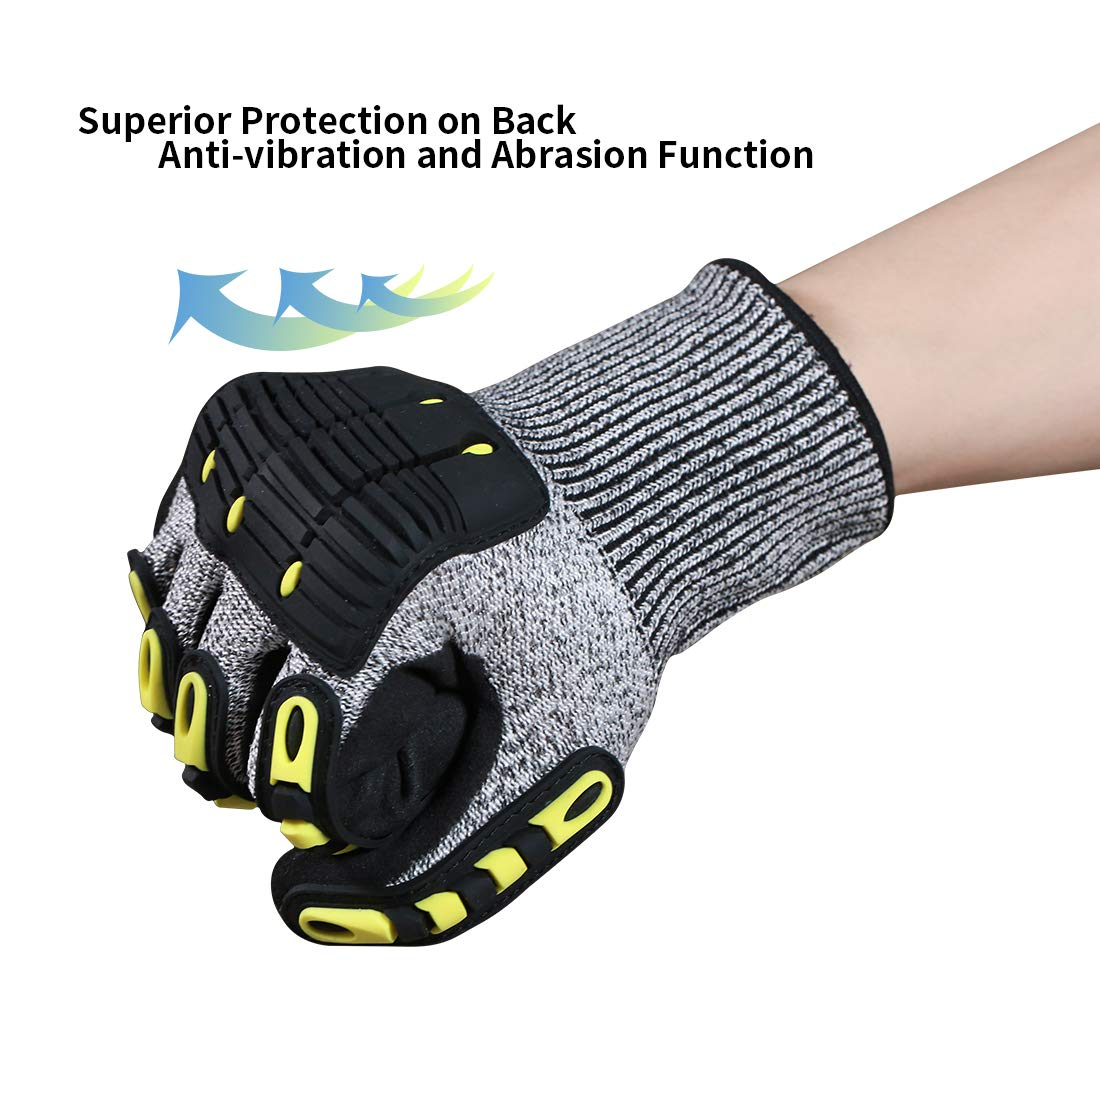 Impact Reducing Safety Gloves, Vibration & Abrasion & Cut Resistant, Ideal for Heavy Duty Safety Work like Mechanic, Garden Construction, Car Repairing Industrial, 1 Pair by KARRISM 2